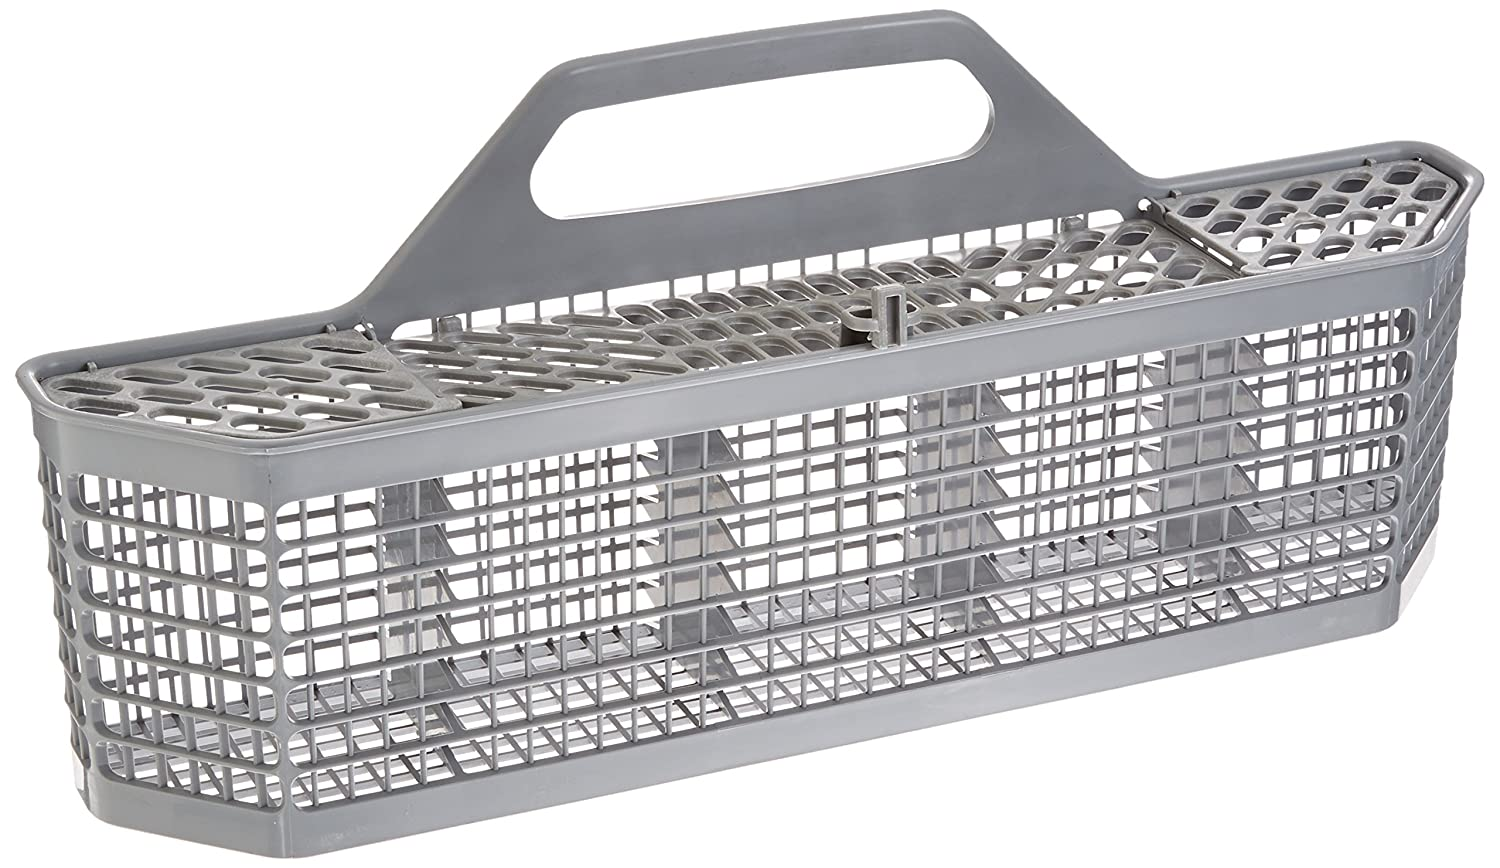 Amazon.com: GE WD28X10128 Dishwasher Silverware Basket: Home Improvement